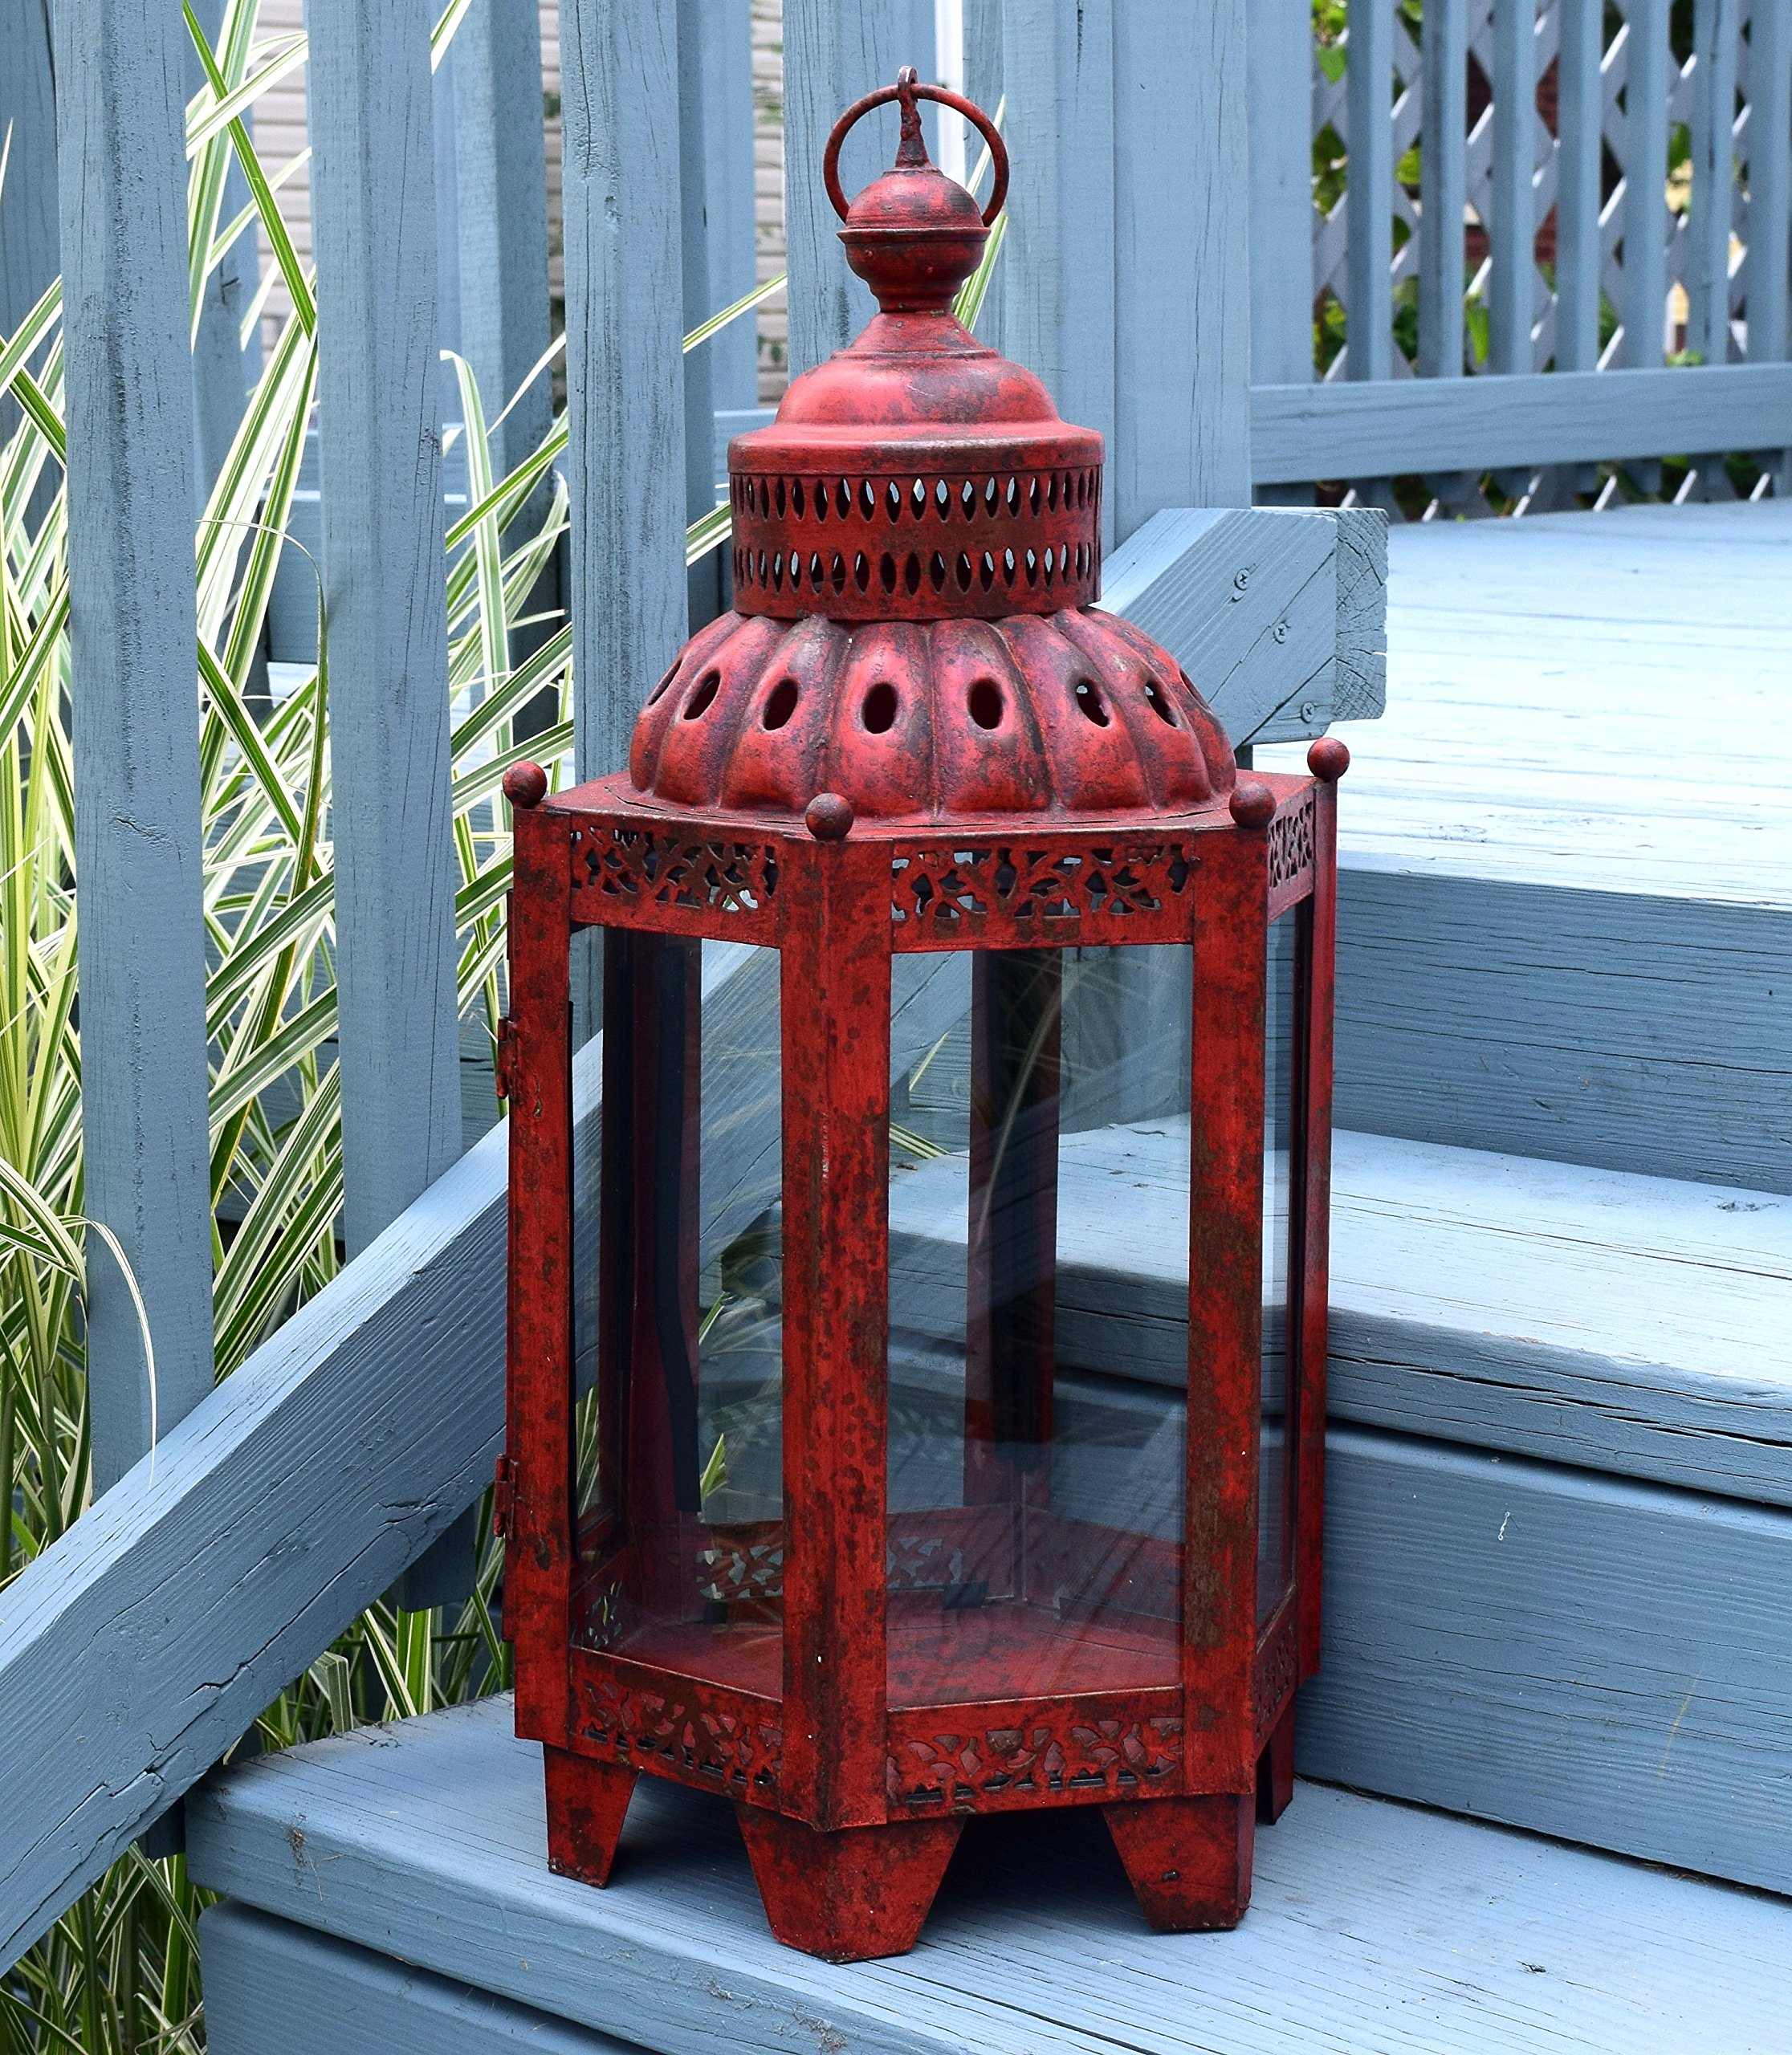 American Patio - Large Rustic Outdoor Lantern - Antique Candle Holder (Red) by American Patio